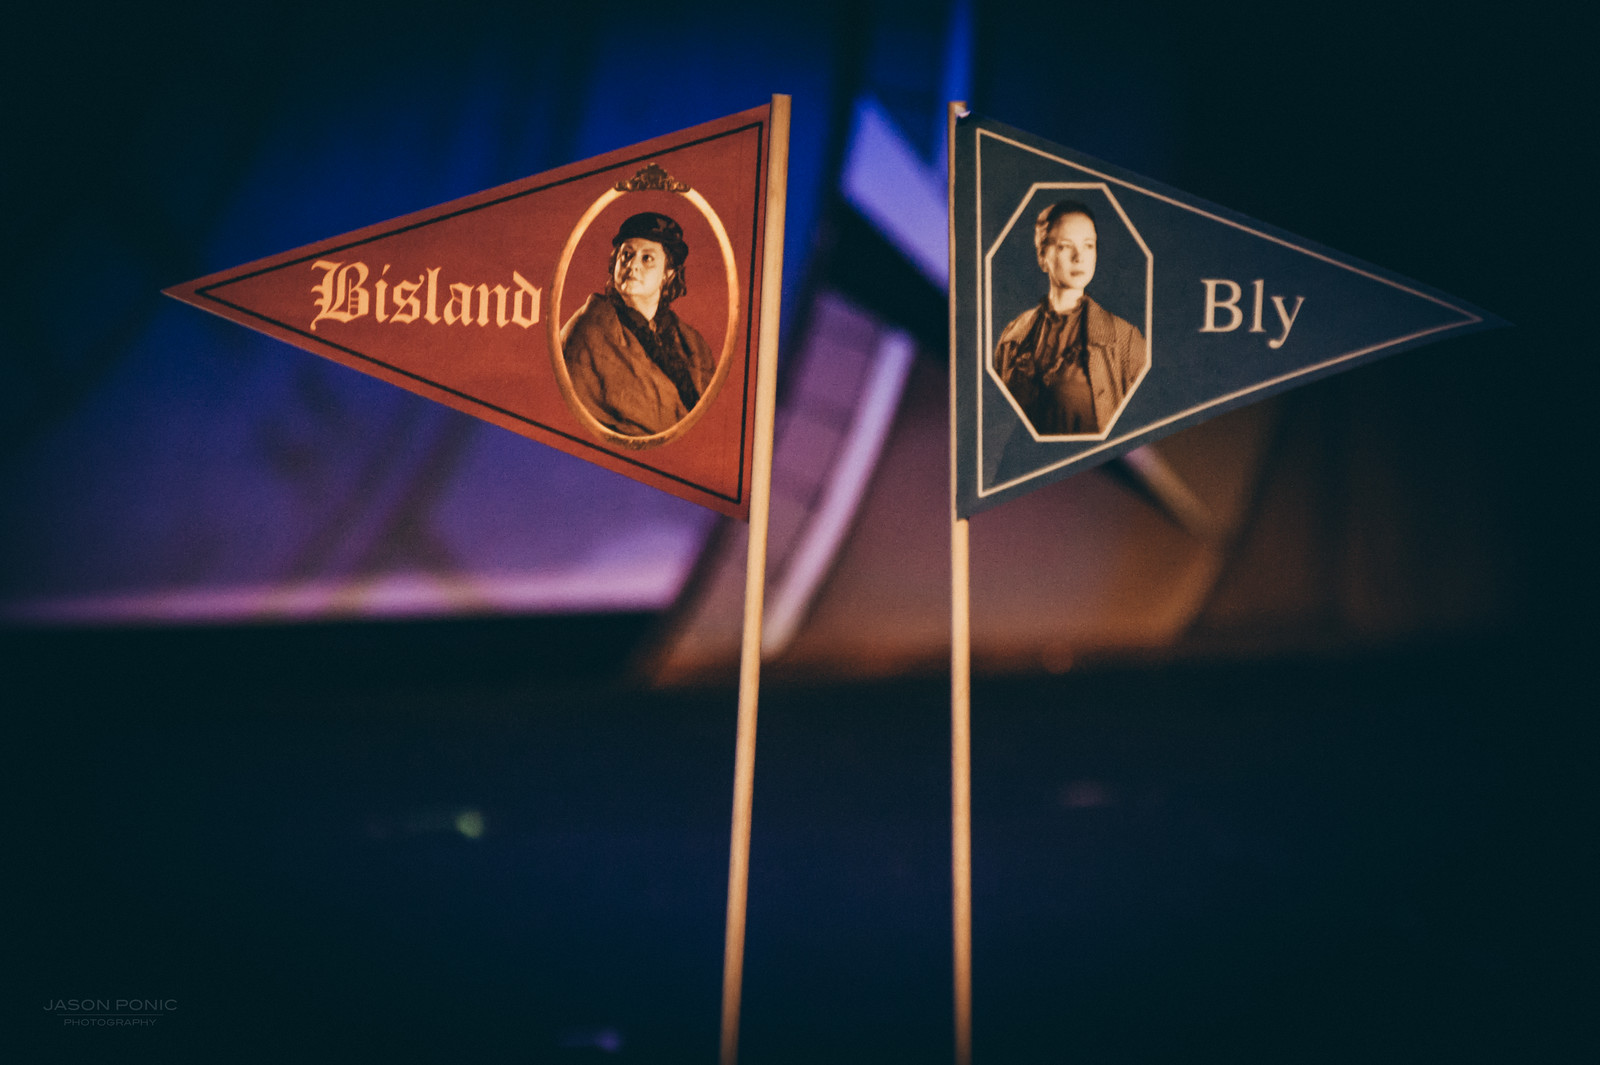 bis:bly flags.jpg